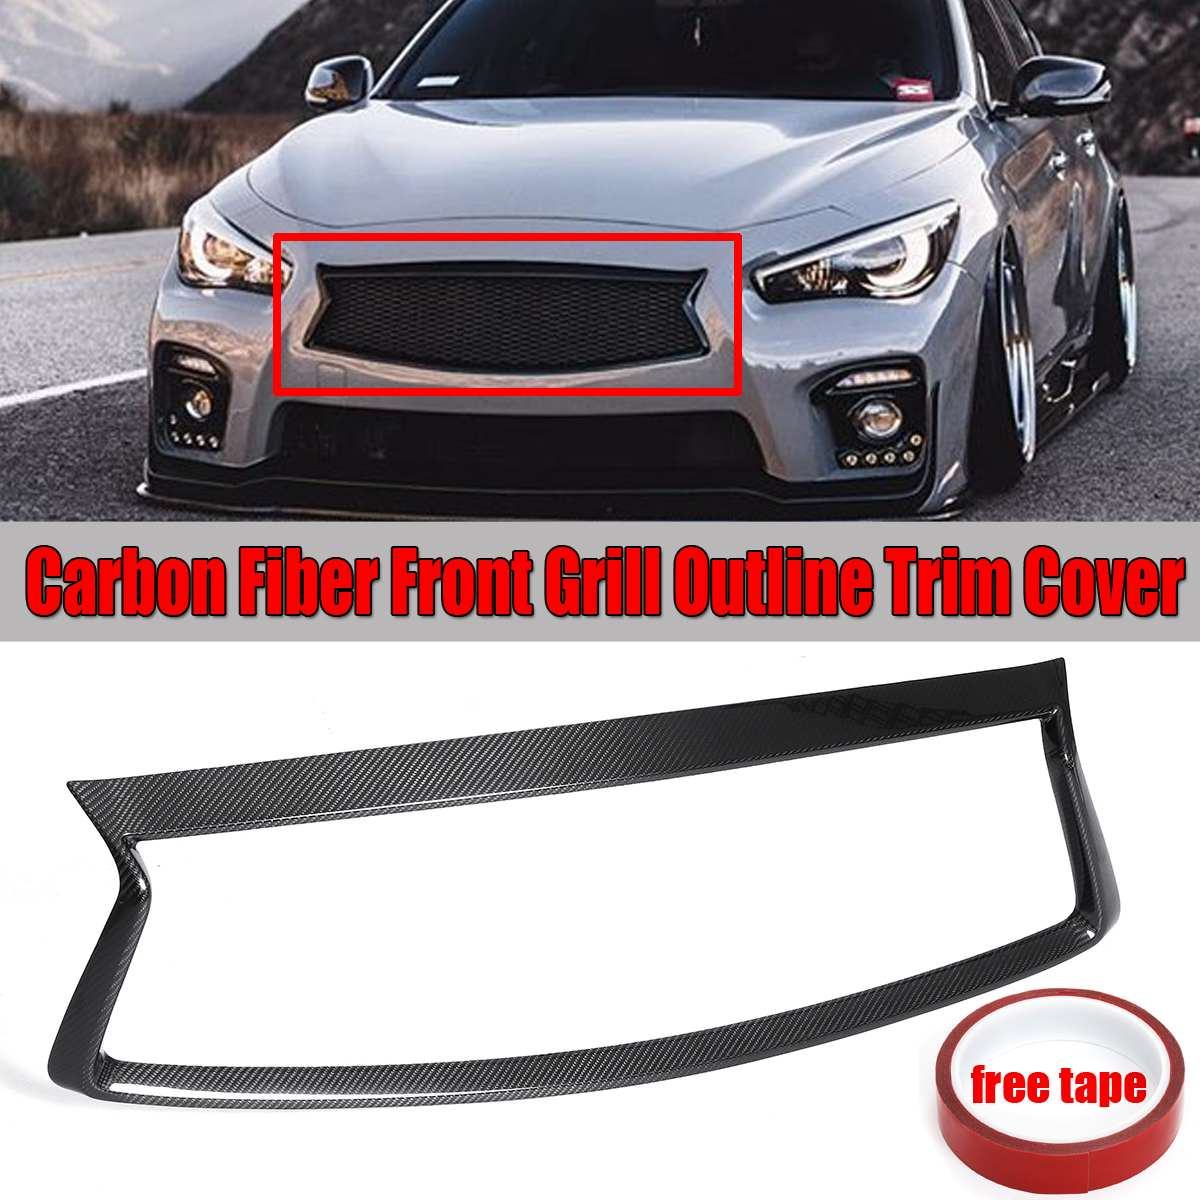 1x Real Carbon Fiber Car Front Bumper Grille Grill Outline Moulding Trim Cover Overlay For Infiniti Q50 2018-2019 Racing Grills1x Real Carbon Fiber Car Front Bumper Grille Grill Outline Moulding Trim Cover Overlay For Infiniti Q50 2018-2019 Racing Grills